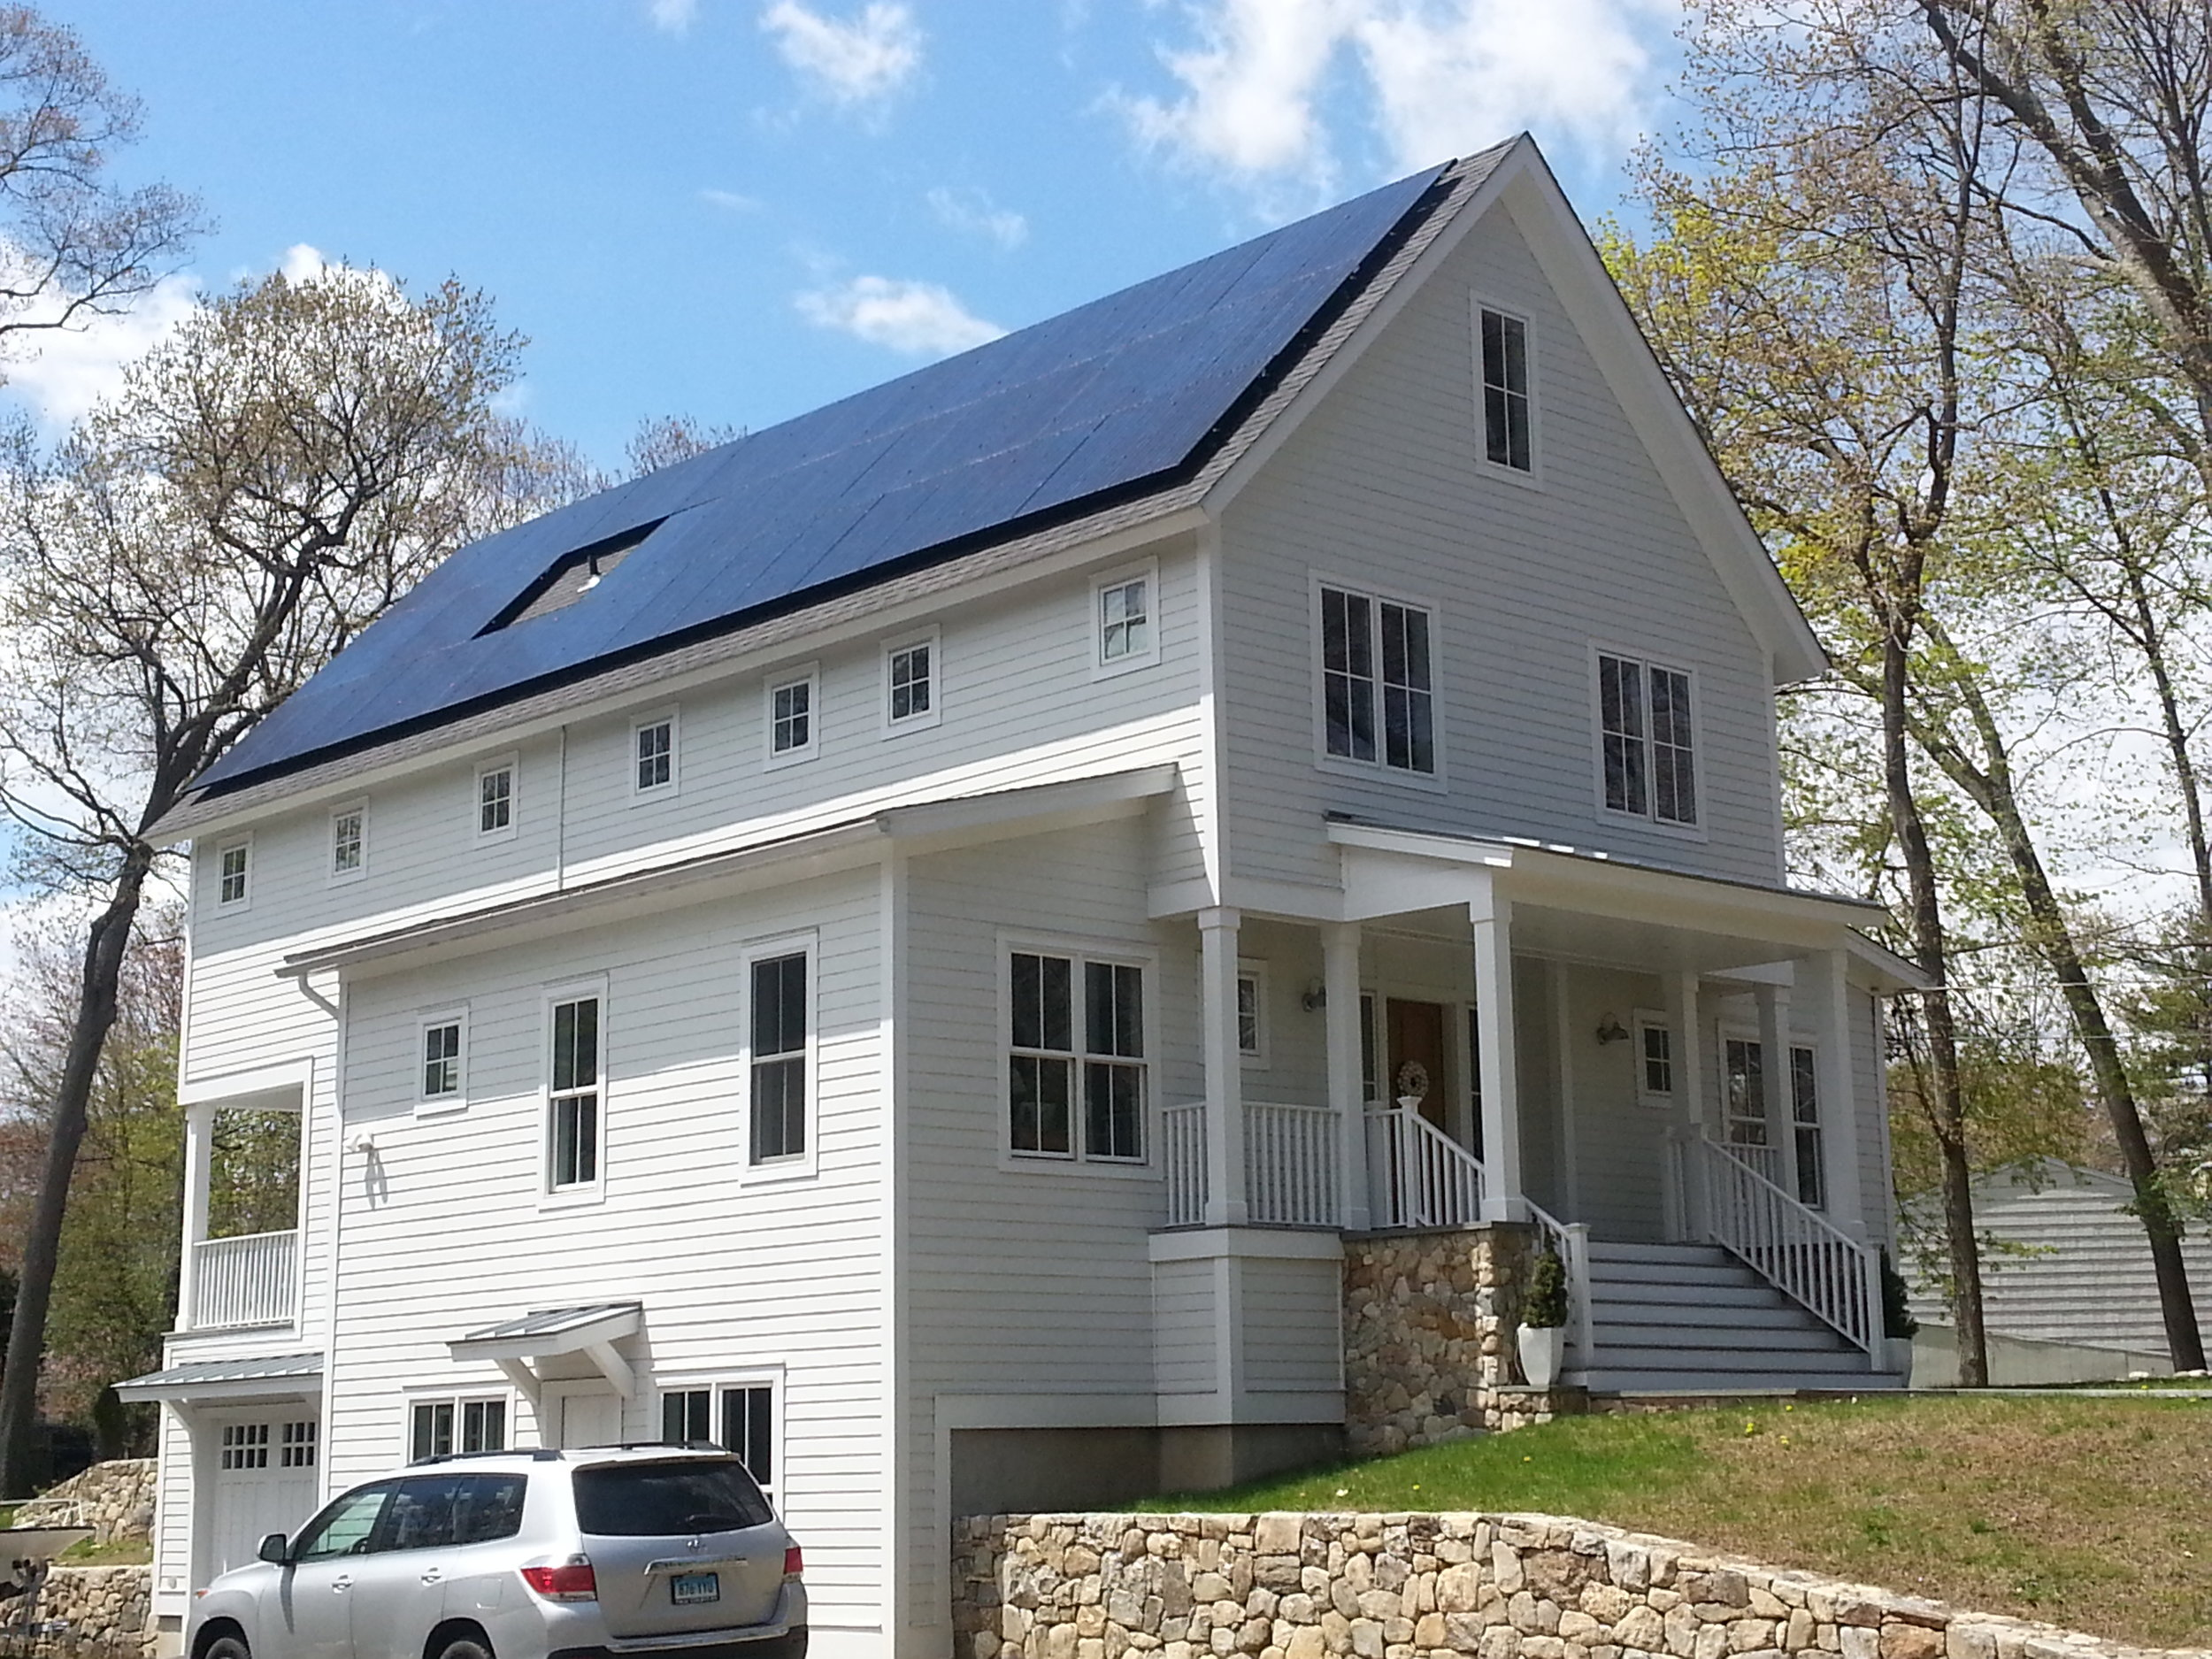 Learn more about this Near Net Zero Energy Farmhouse in Westport, CT